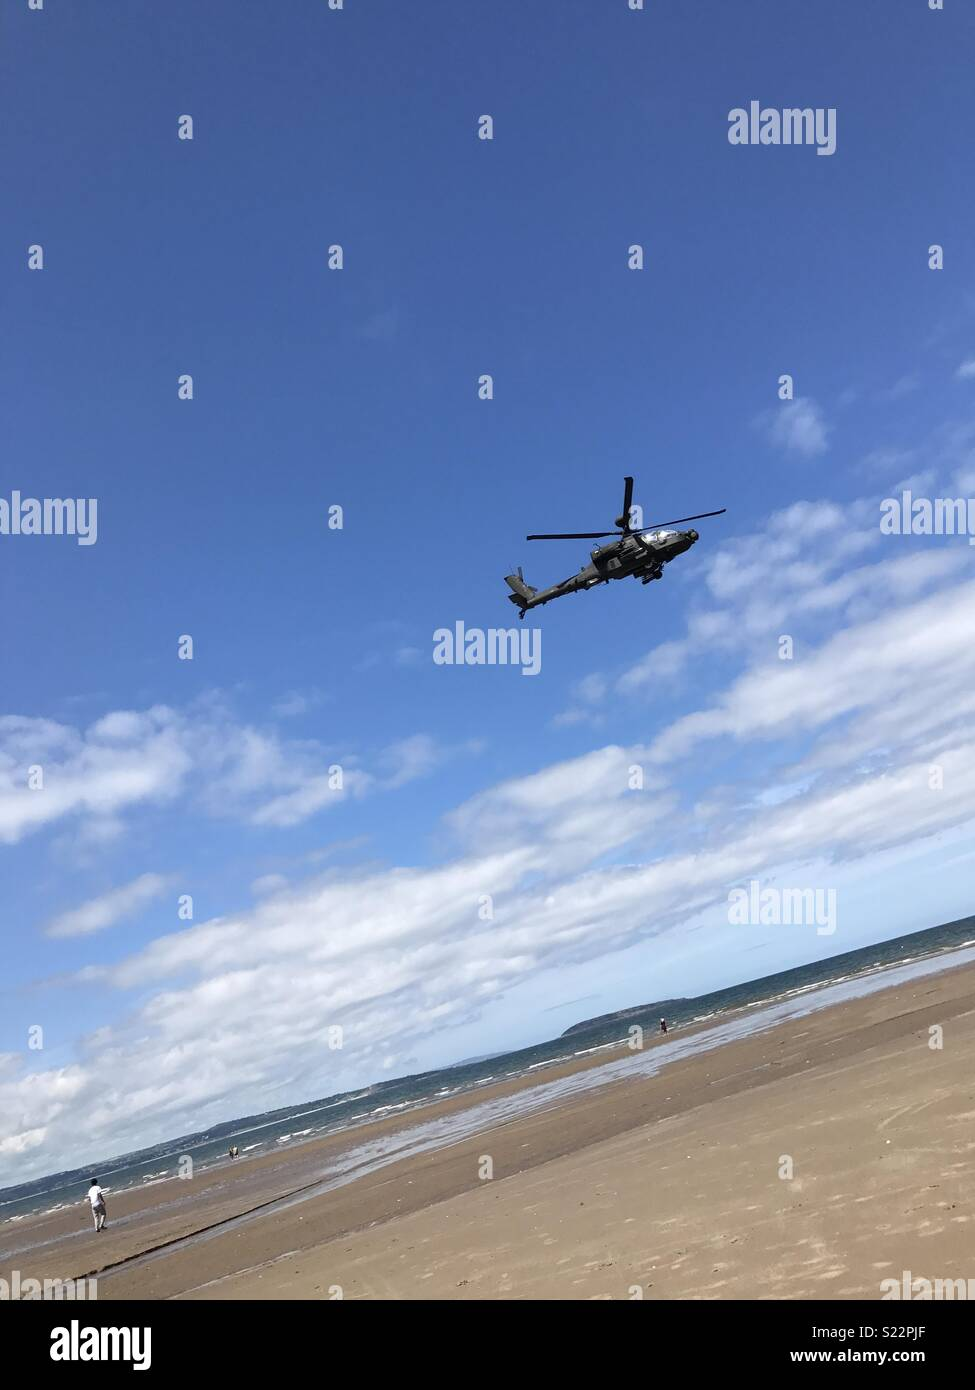 Helicopter over beach - Stock Image